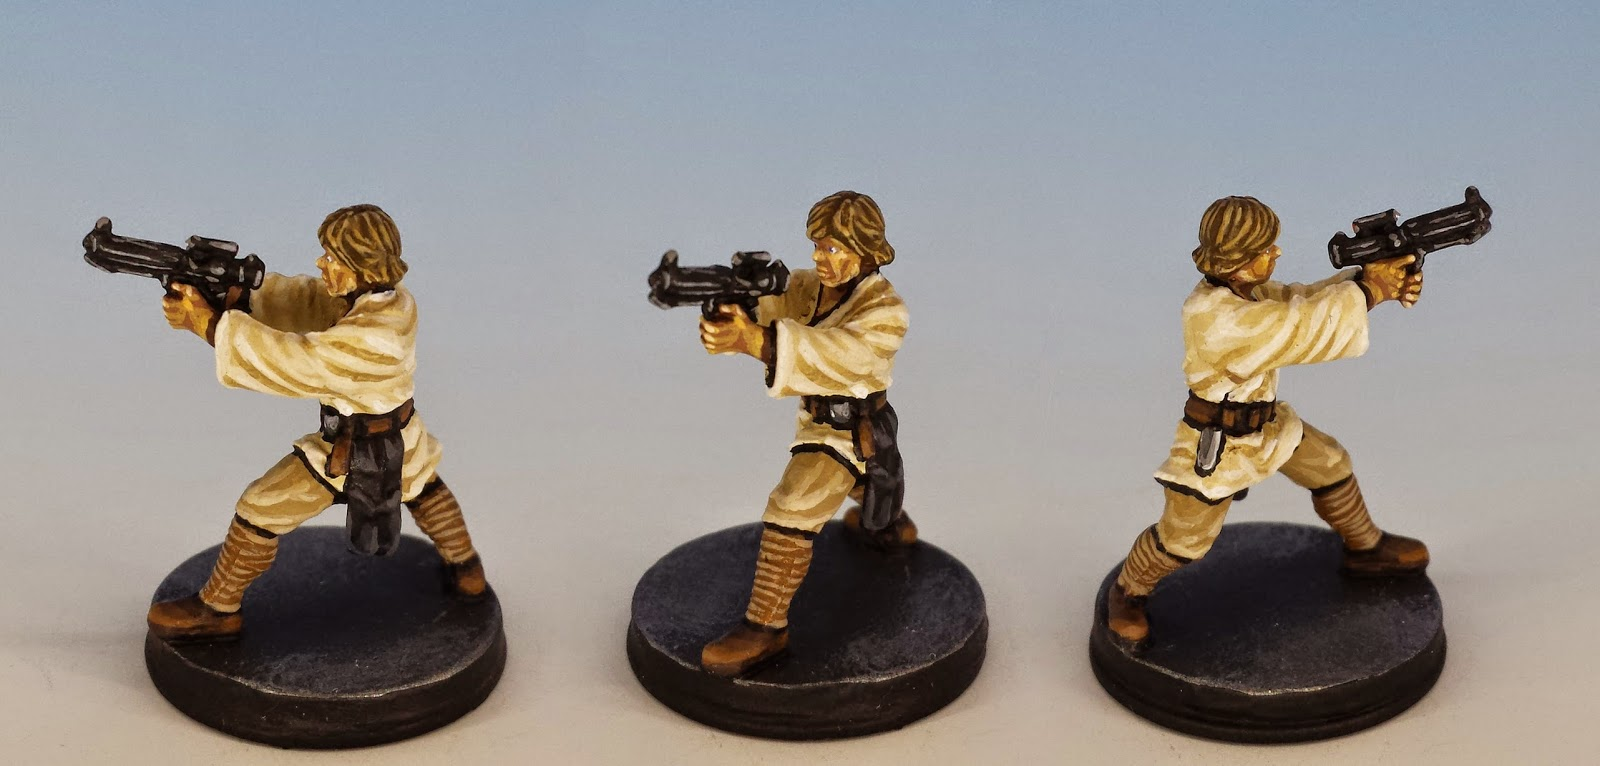 Luke Skywalker, Fantasy Flight Games (2014, sculpted by Benjamin Maillet, painted by M. Sullivan)